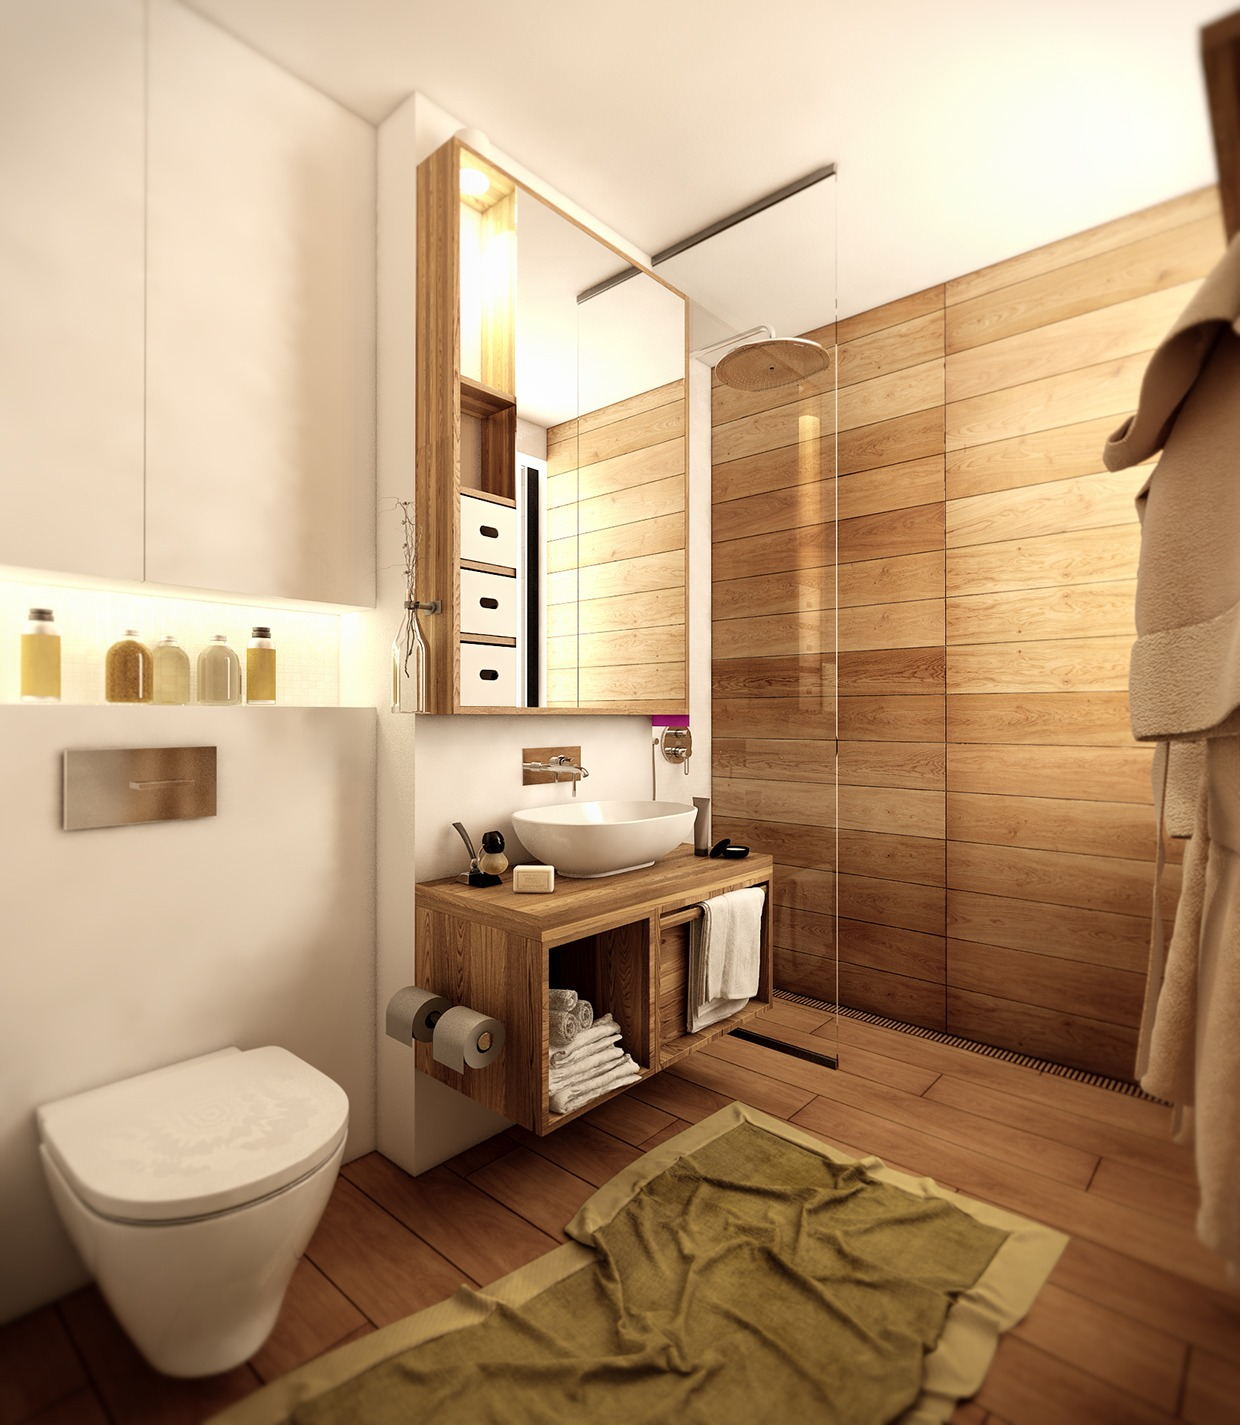 Wood floor bathroom interior design ideas for Wood floor bathroom